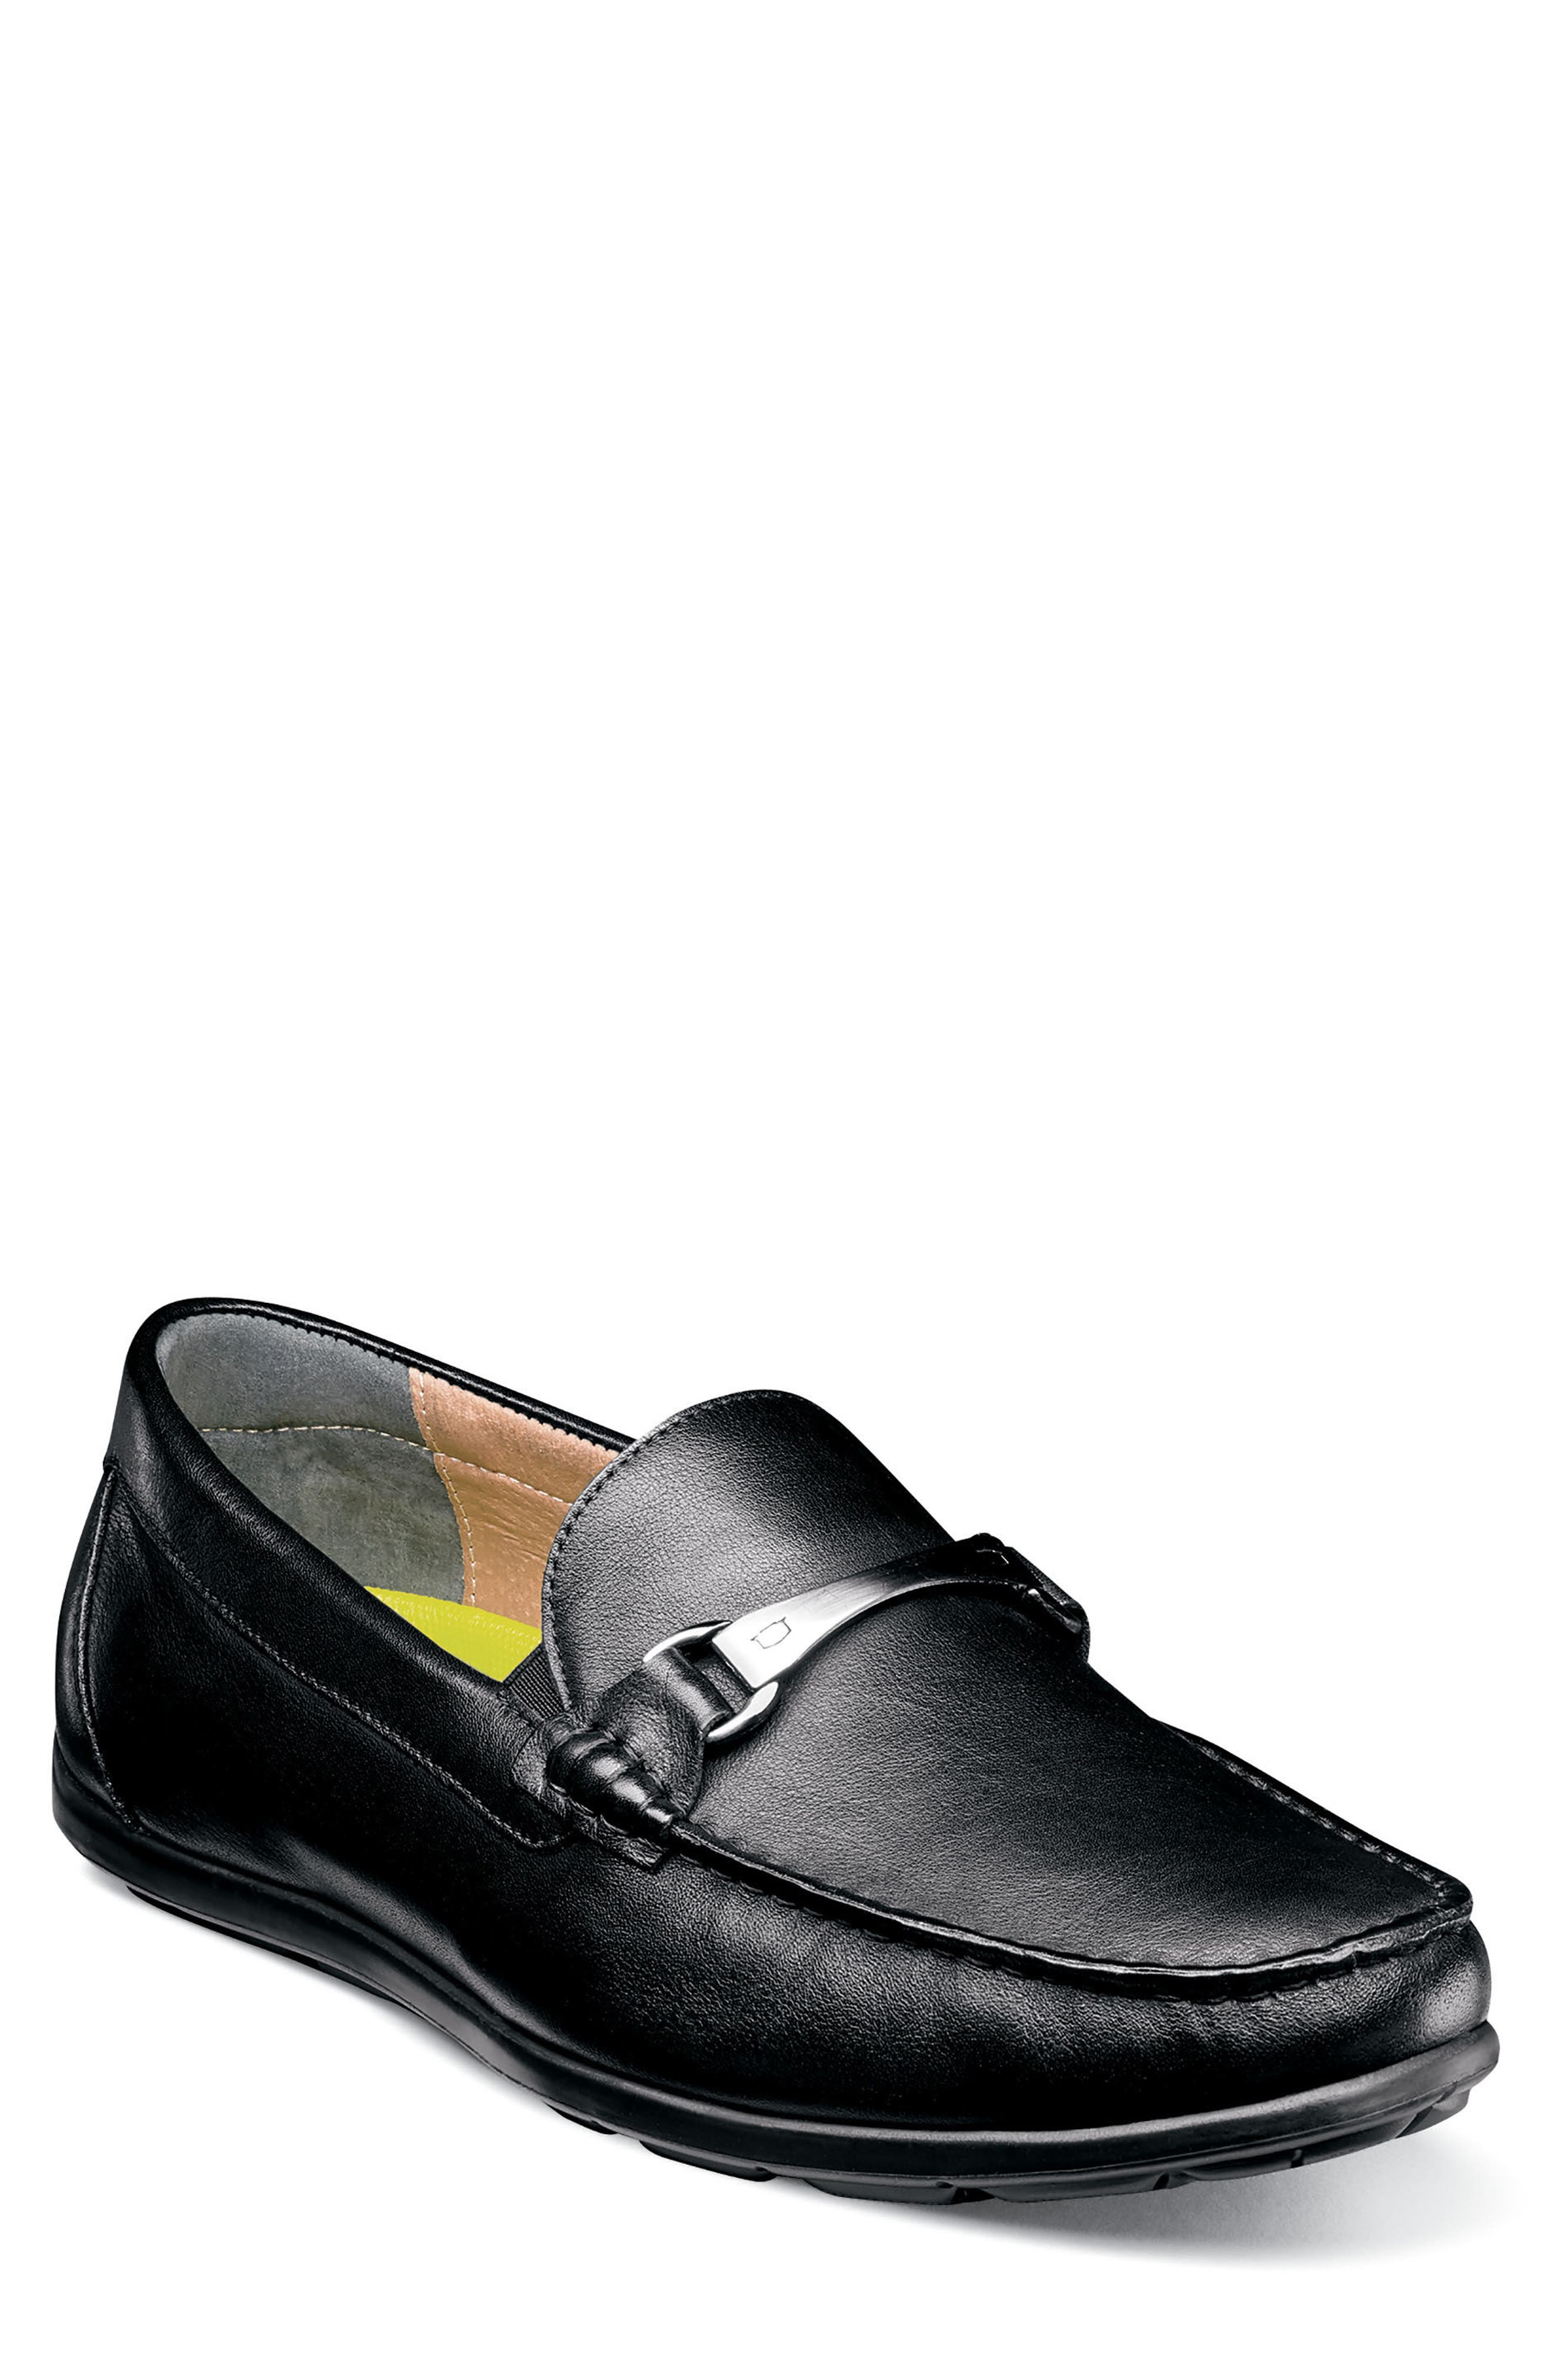 Comfortech Bit Loafer,                         Main,                         color, Black Smooth